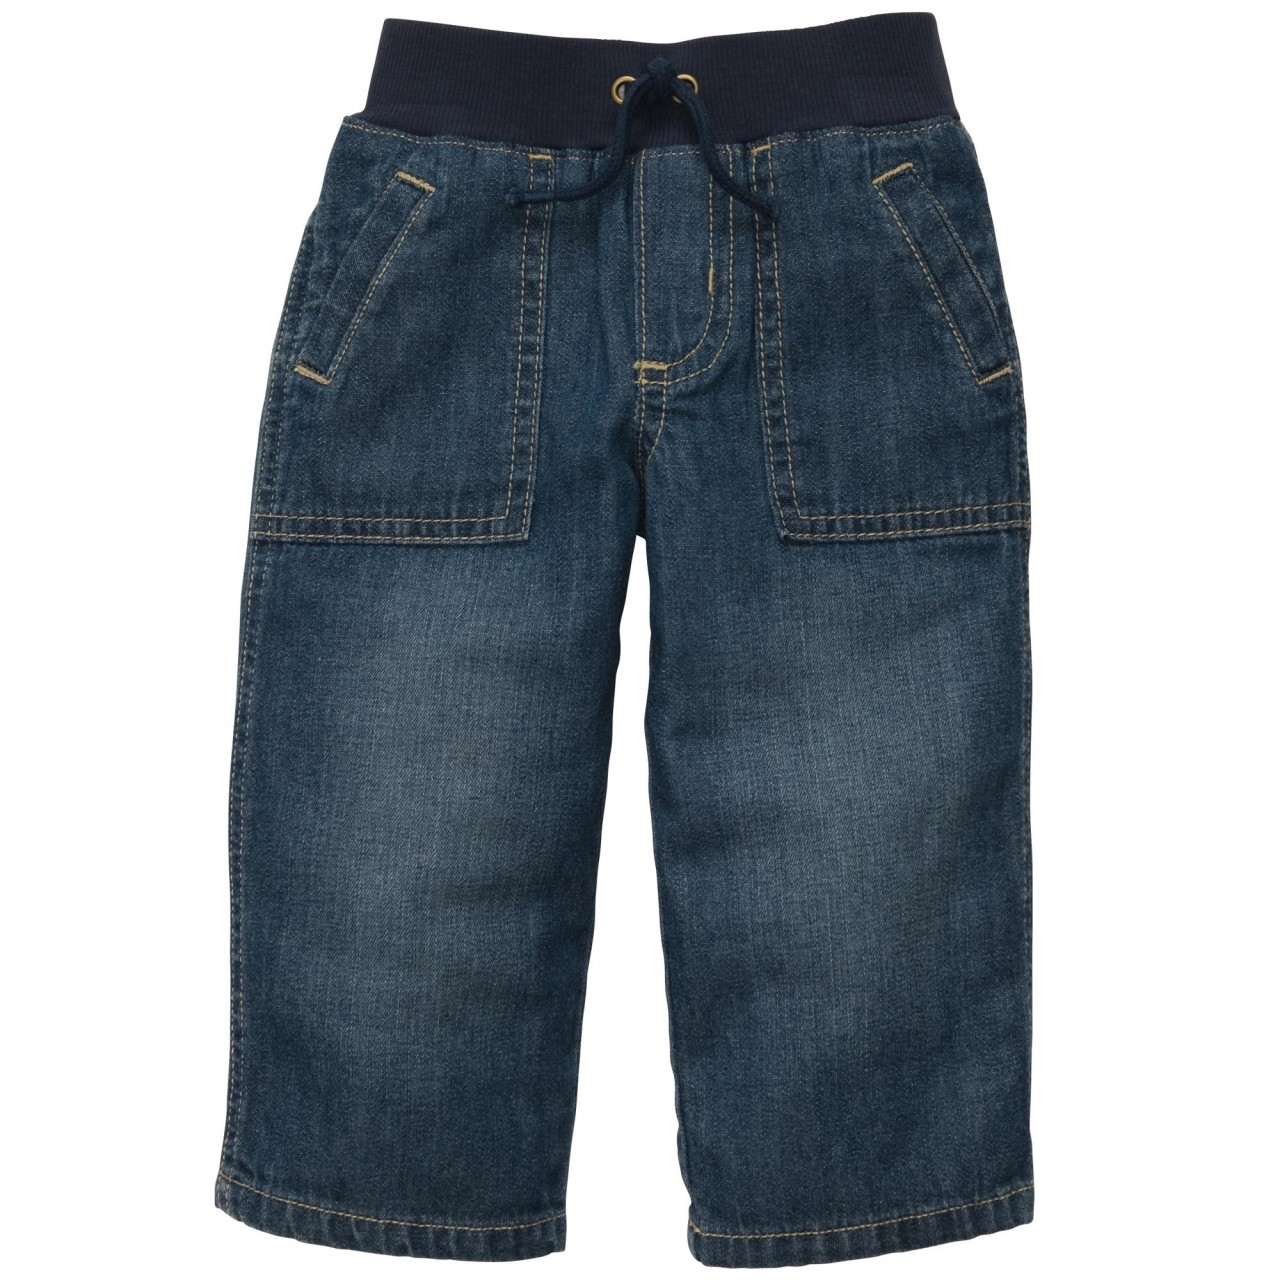 CALCA JEANS CARTER'S PULL ON JEANS